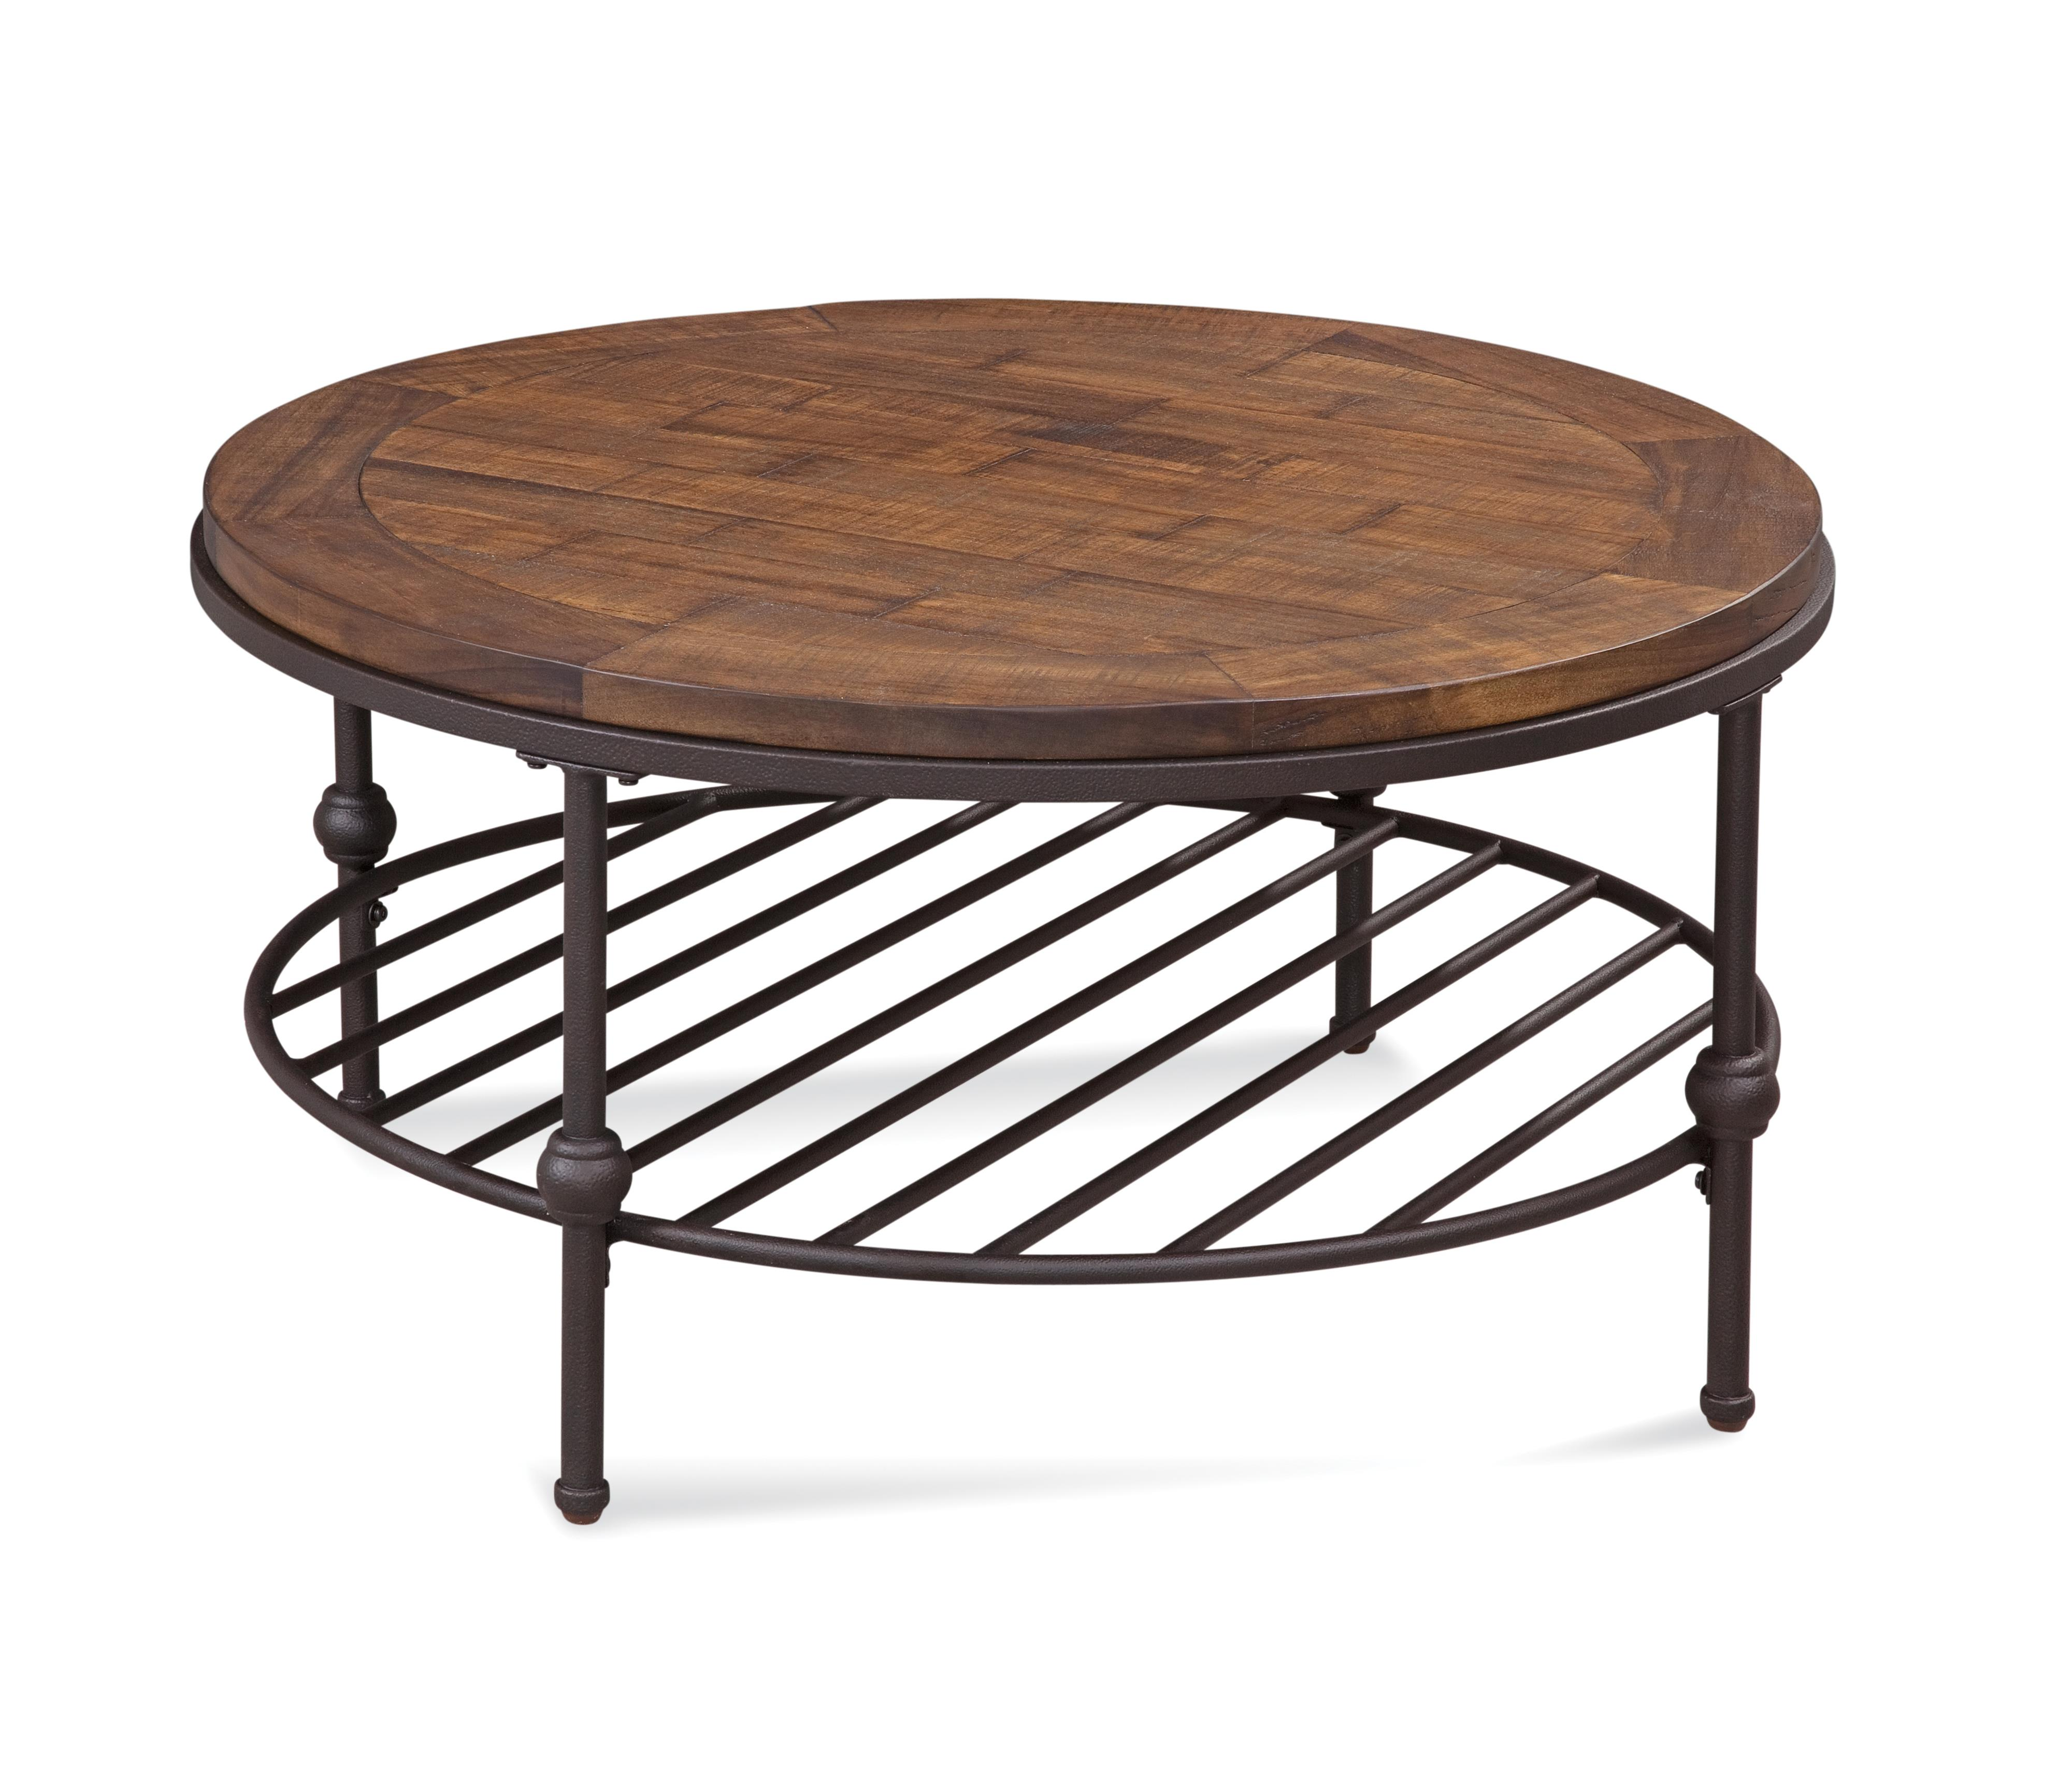 Belgian Luxe Emery Round Cocktail Table by Bassett Mirror at Alison Craig Home Furnishings